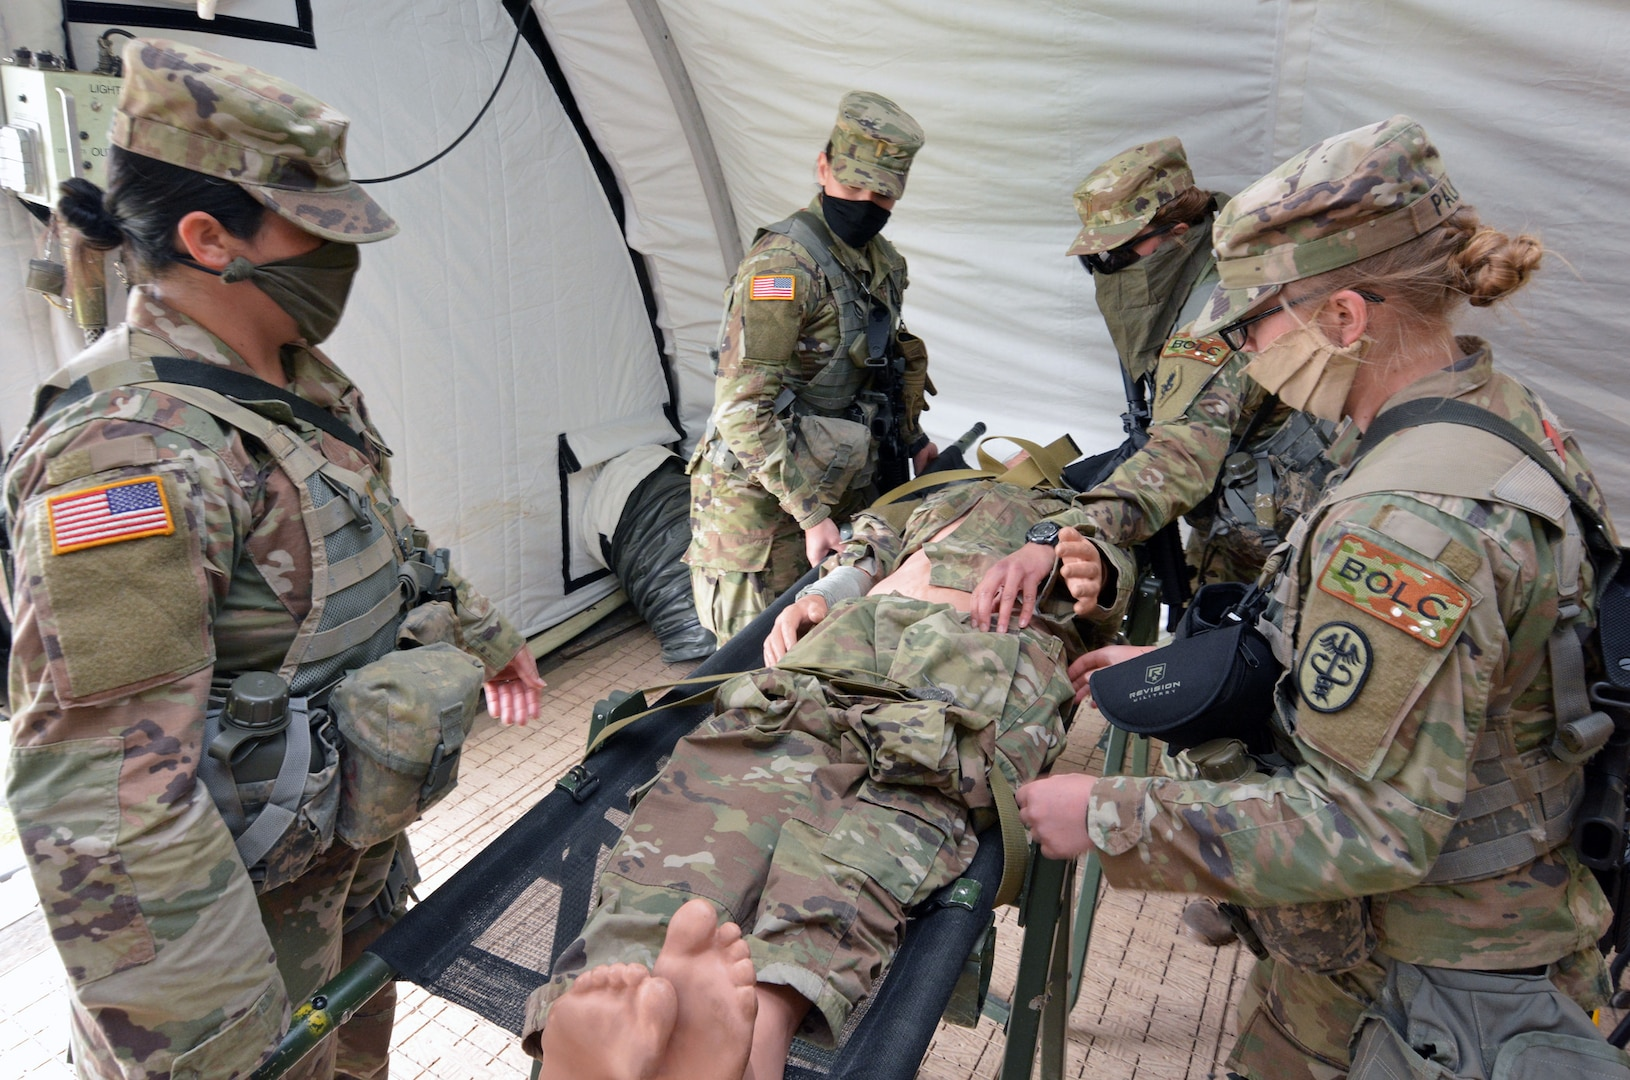 Basic Officer Leadership Course students practice moving a simulated causality into a field hospital while practicing tactical dispersion and social distance during a field training exercise at Joint Base San Antonio-Camp Bullis April 14.